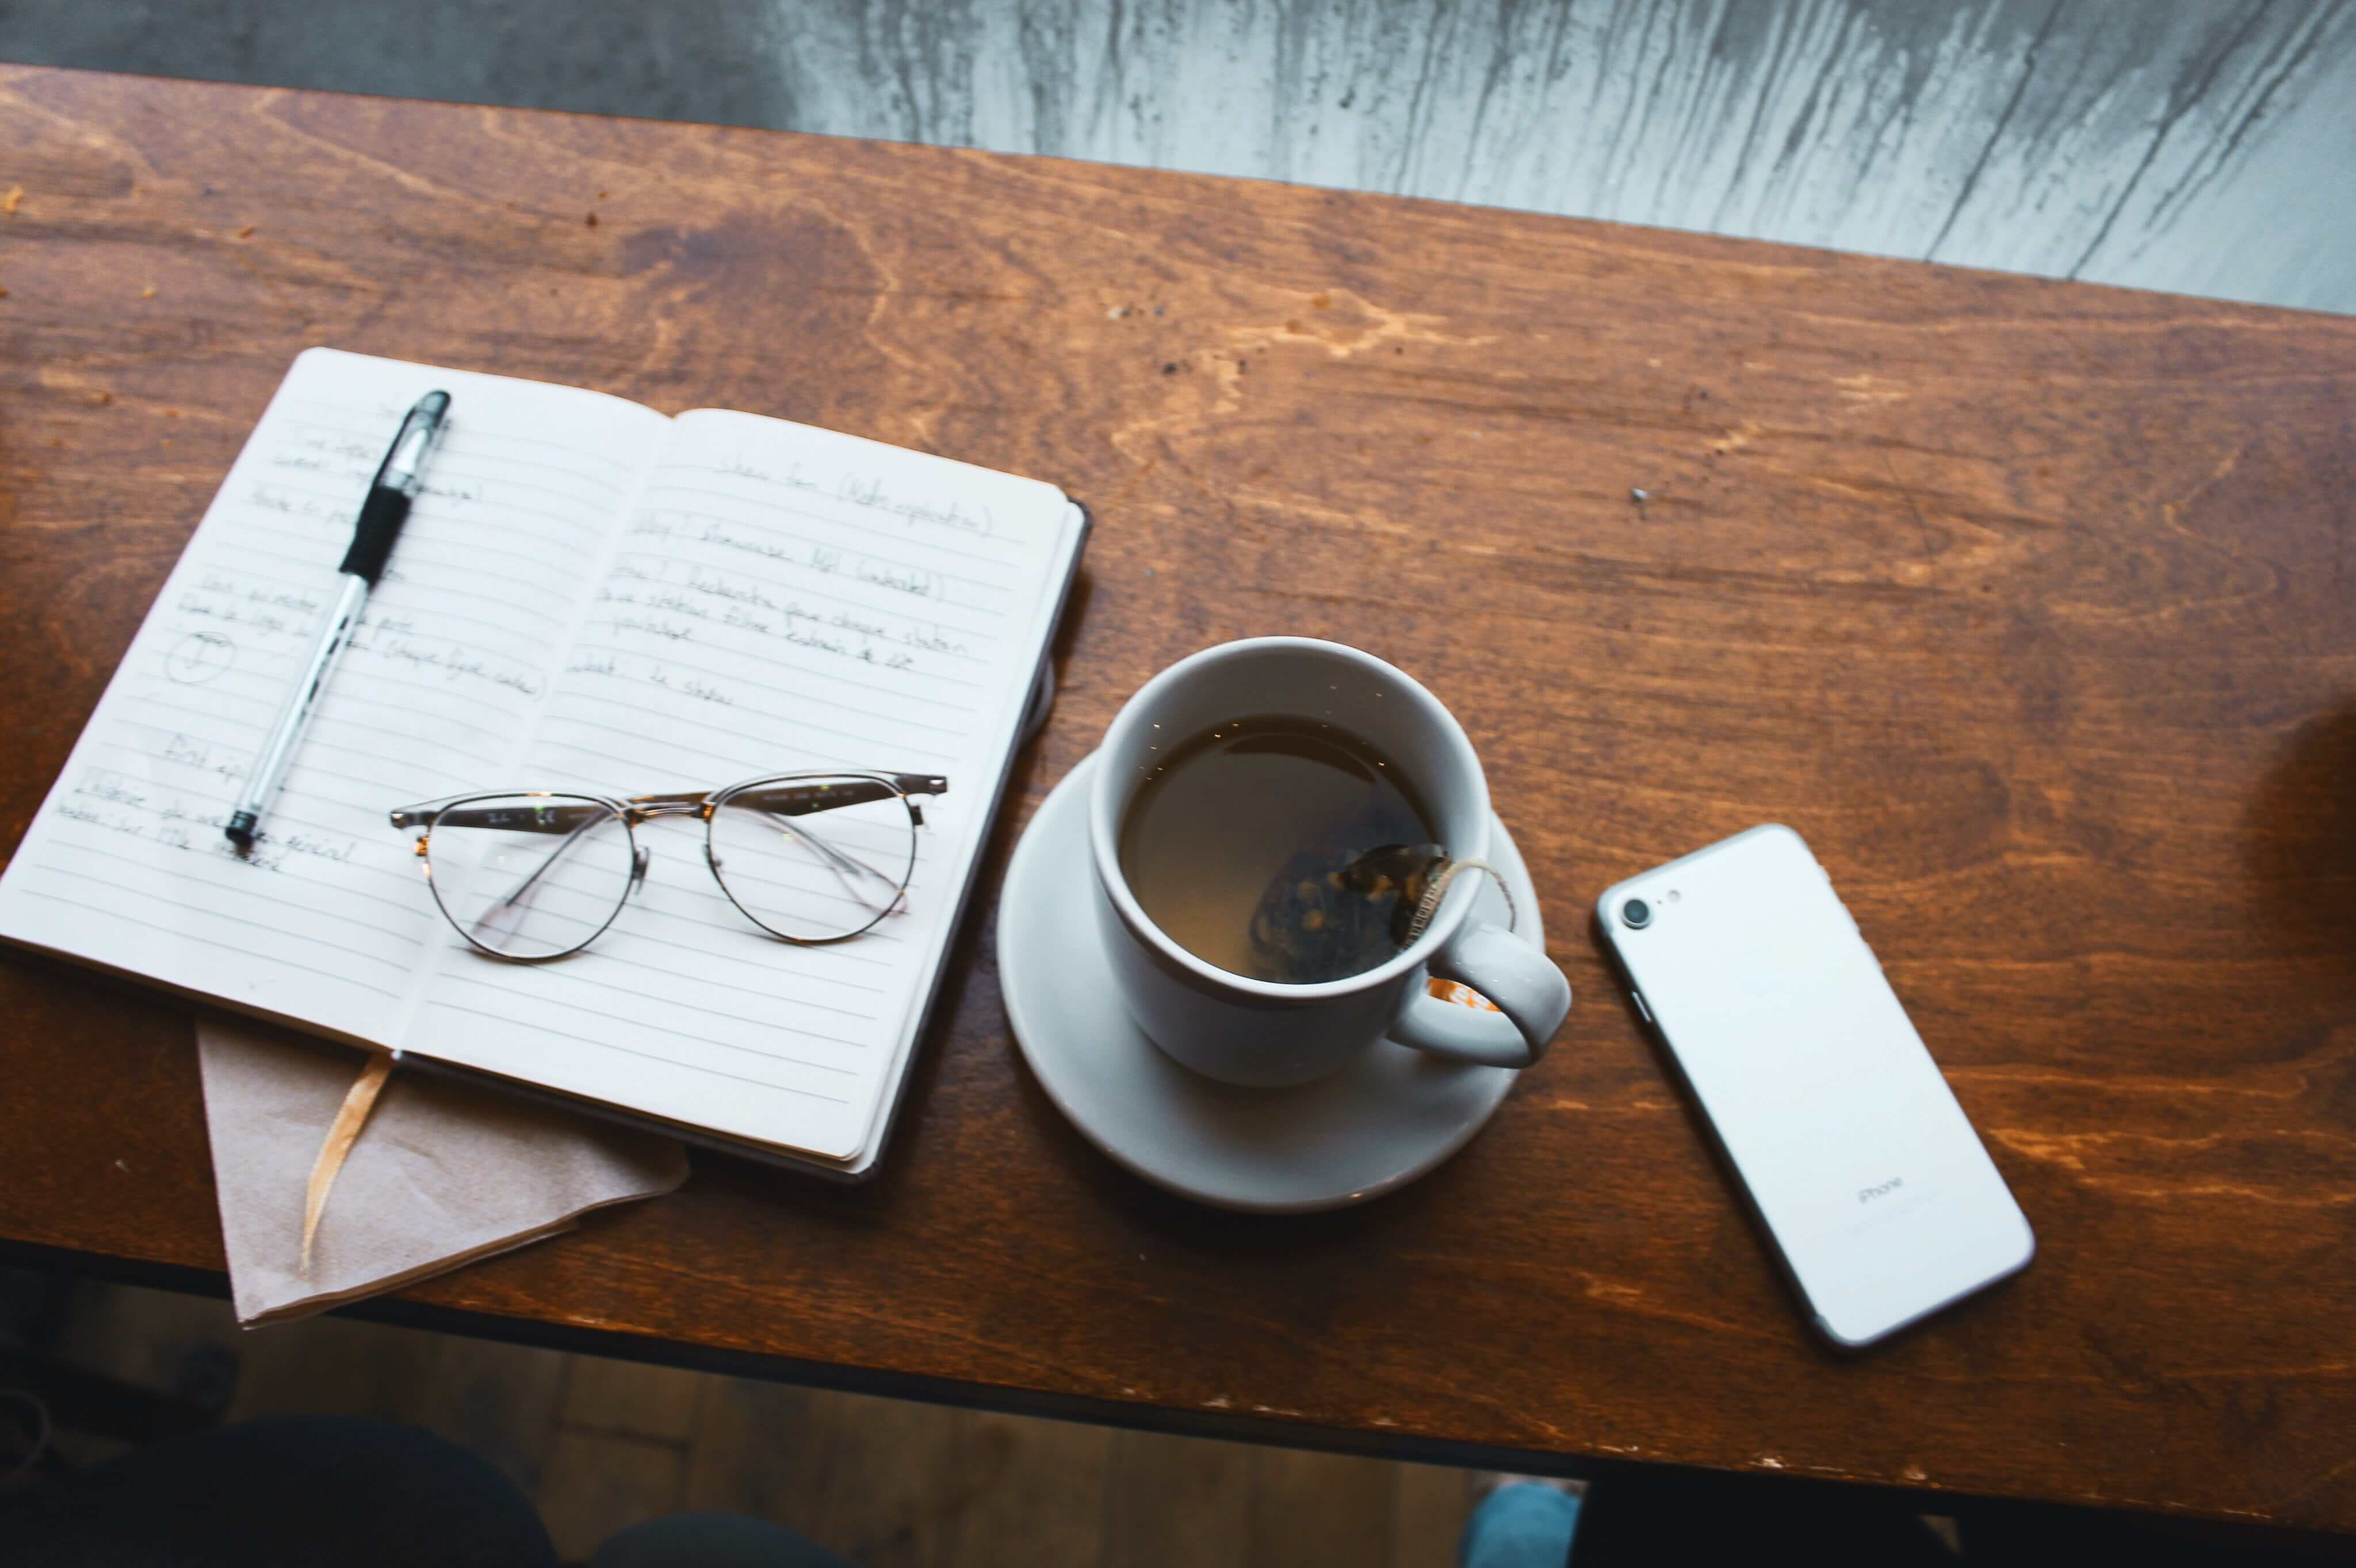 Notebook, coffee, phone, tools for any small business owner or entrepreneur to file or register their business